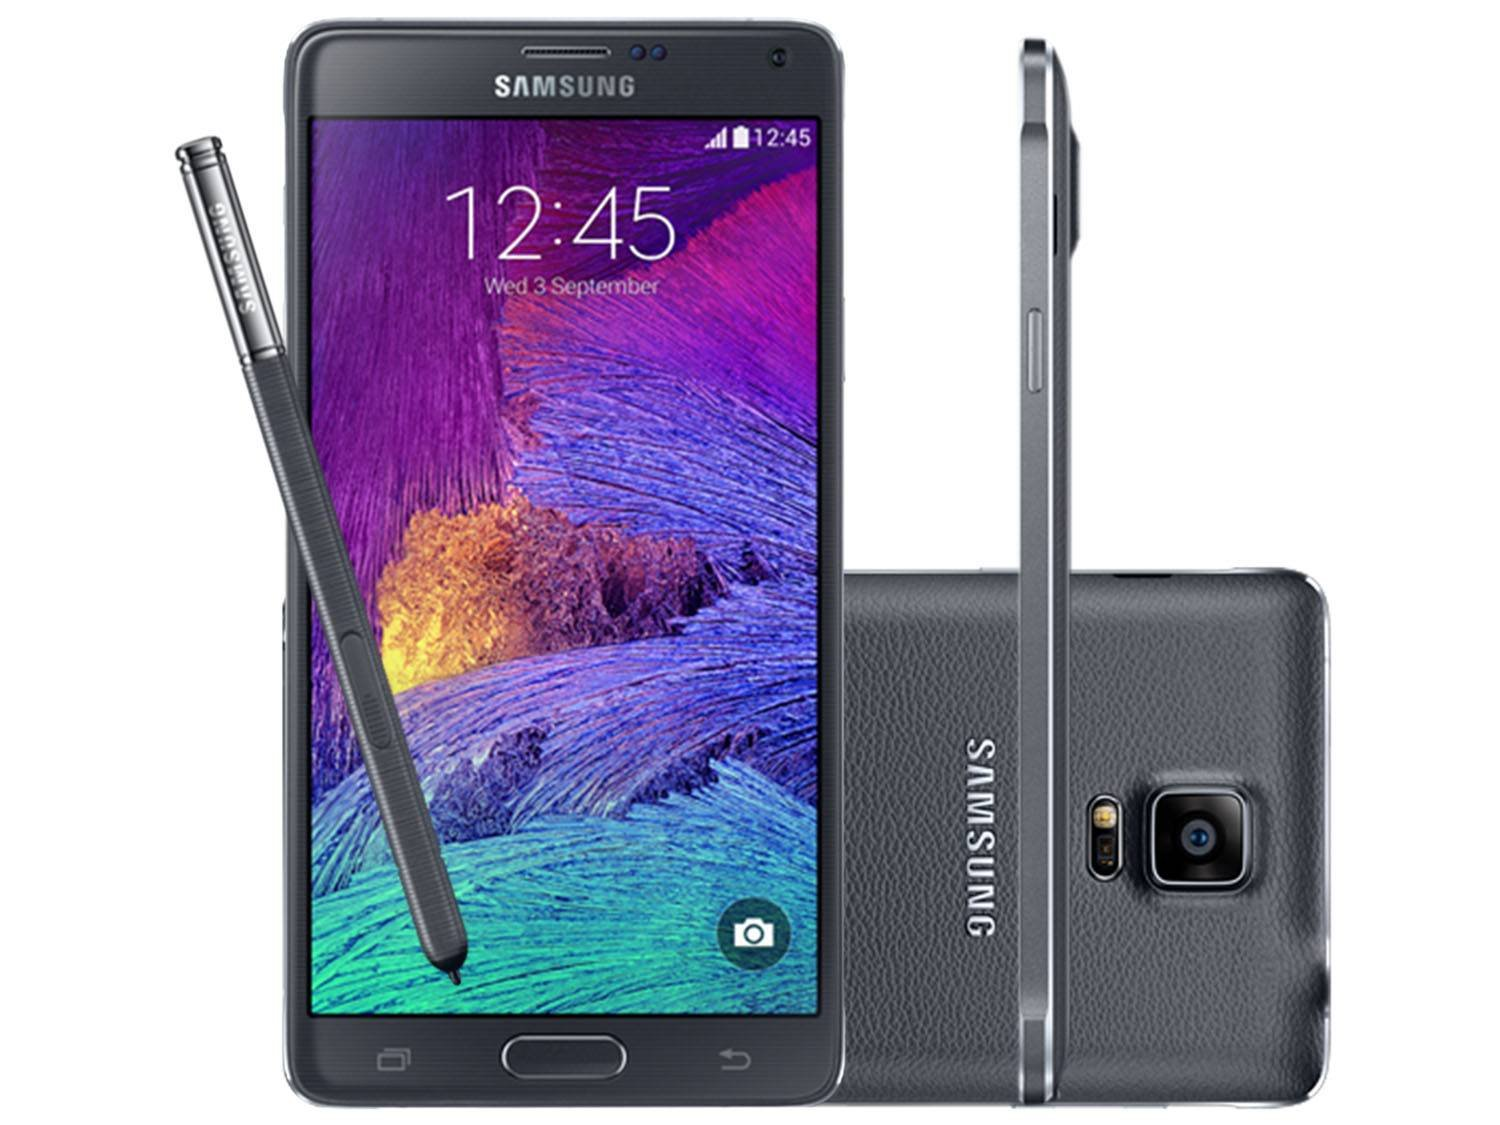 smartphone-samsung-galaxy-note-4-4g-android-4.4-cam.-16mp-tela-5.7-proc.-octa-core-wi-fi-a-gps